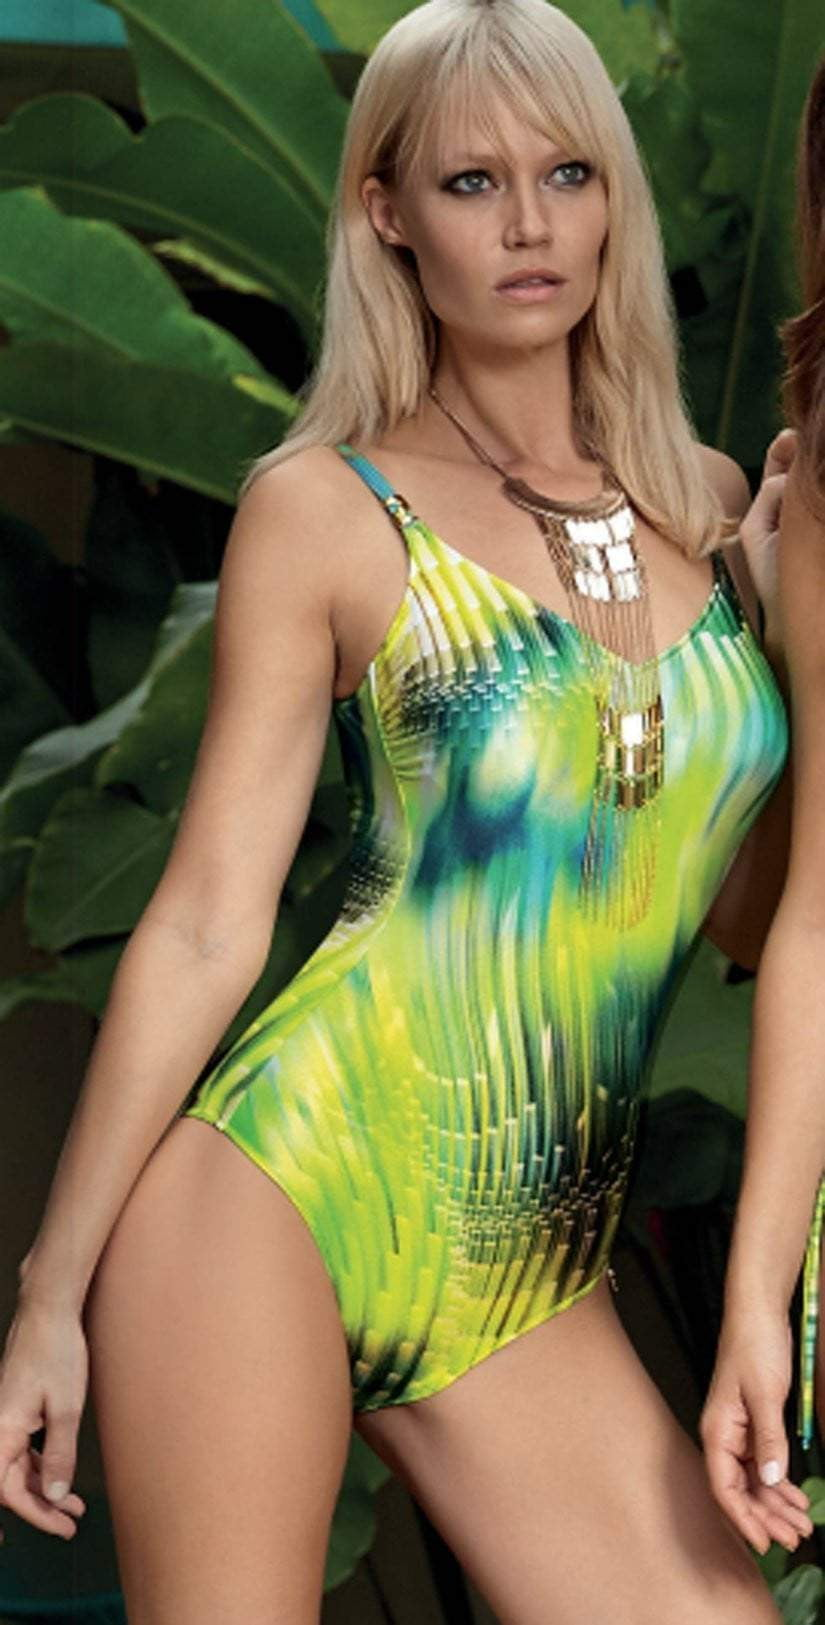 Opera Swim Greenwater One-Piece Swimsuit 62671-75: